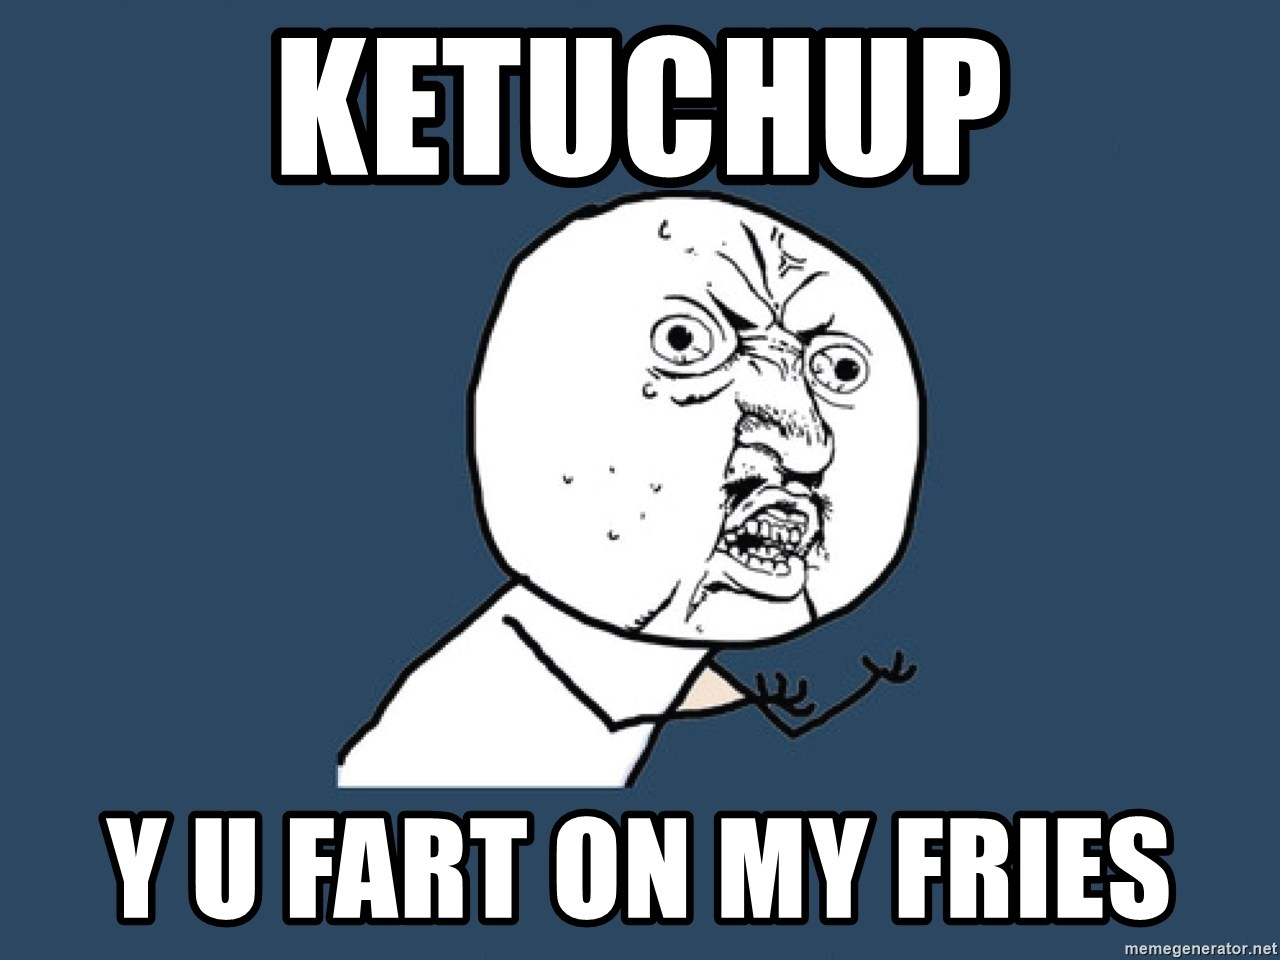 Y U No - Ketuchup y u fart on my fries